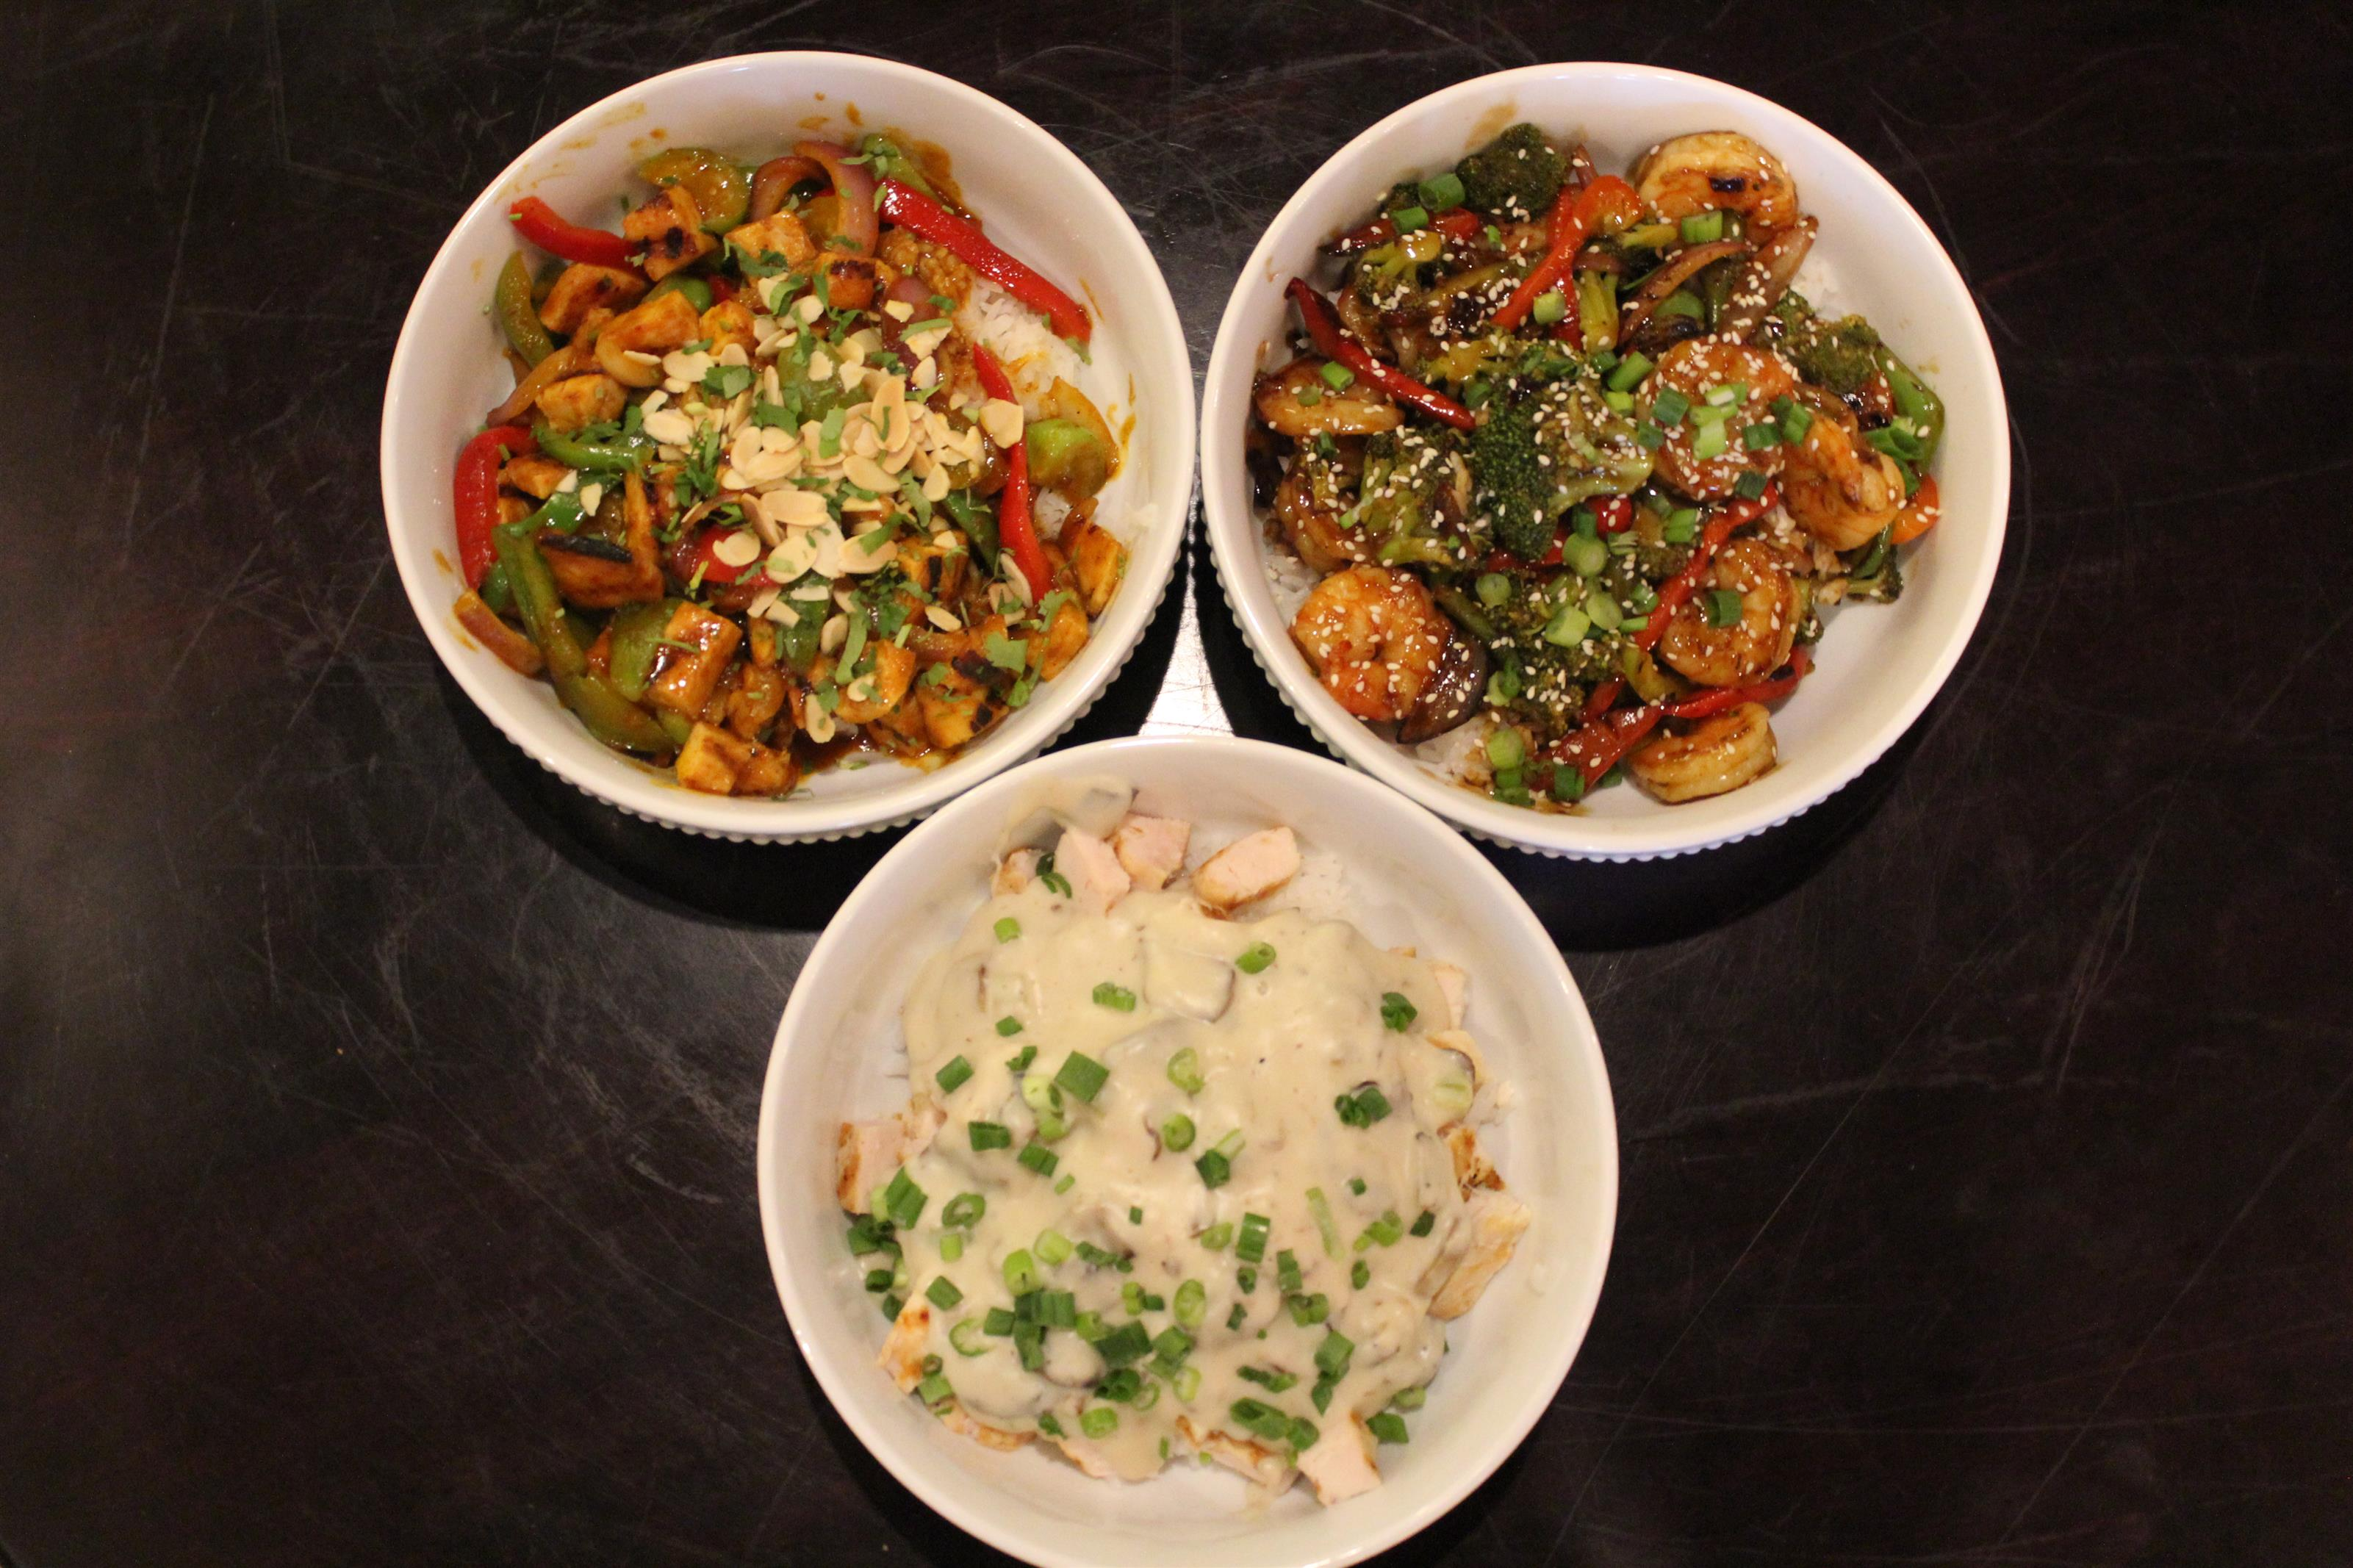 variety of stir-fry shrimp and chicken dishes with broccoli, peppers, onions.